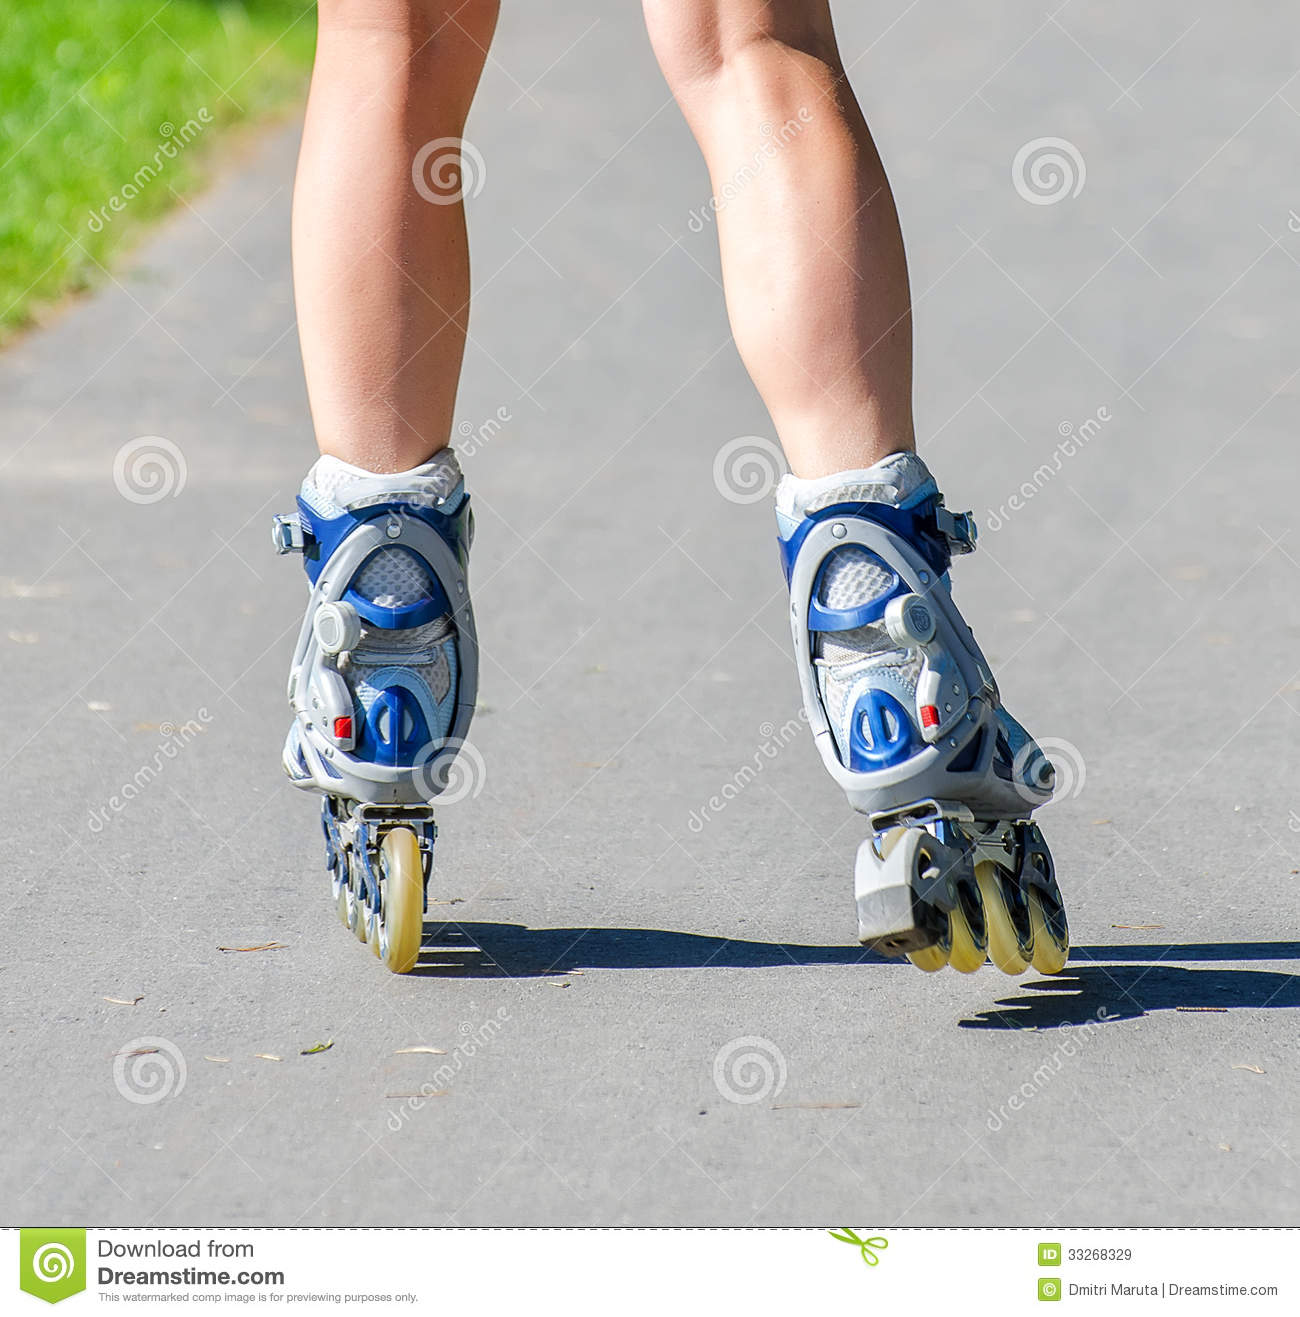 Woman Inline Skating Wiring Diagrams Simple Event Counter Circuit Diagram Tradeoficcom Female Legs In Roller Blades Royalty Free Stock Images Hockey Skates